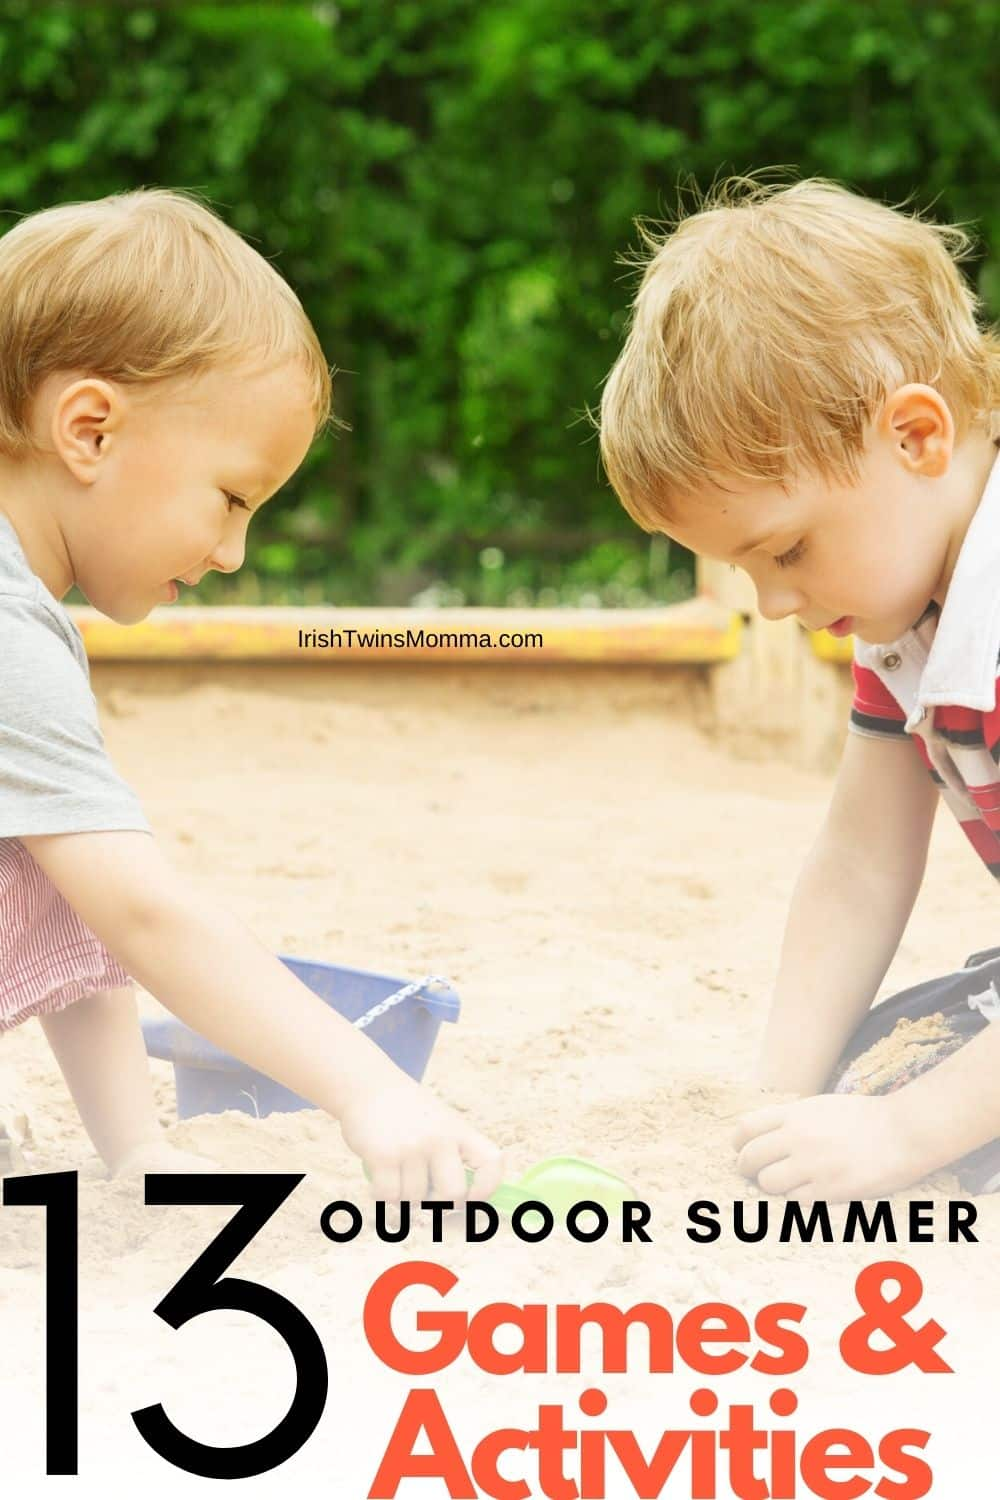 If your kids are like mine, they get super fidgety and restless as the colder months and days wind down. They've spent months mostly cooped up inside -- and while there are many easy and engaging summer activities that they can do indoors, they are ready to also spend more time under the sun. via @irishtwinsmom11